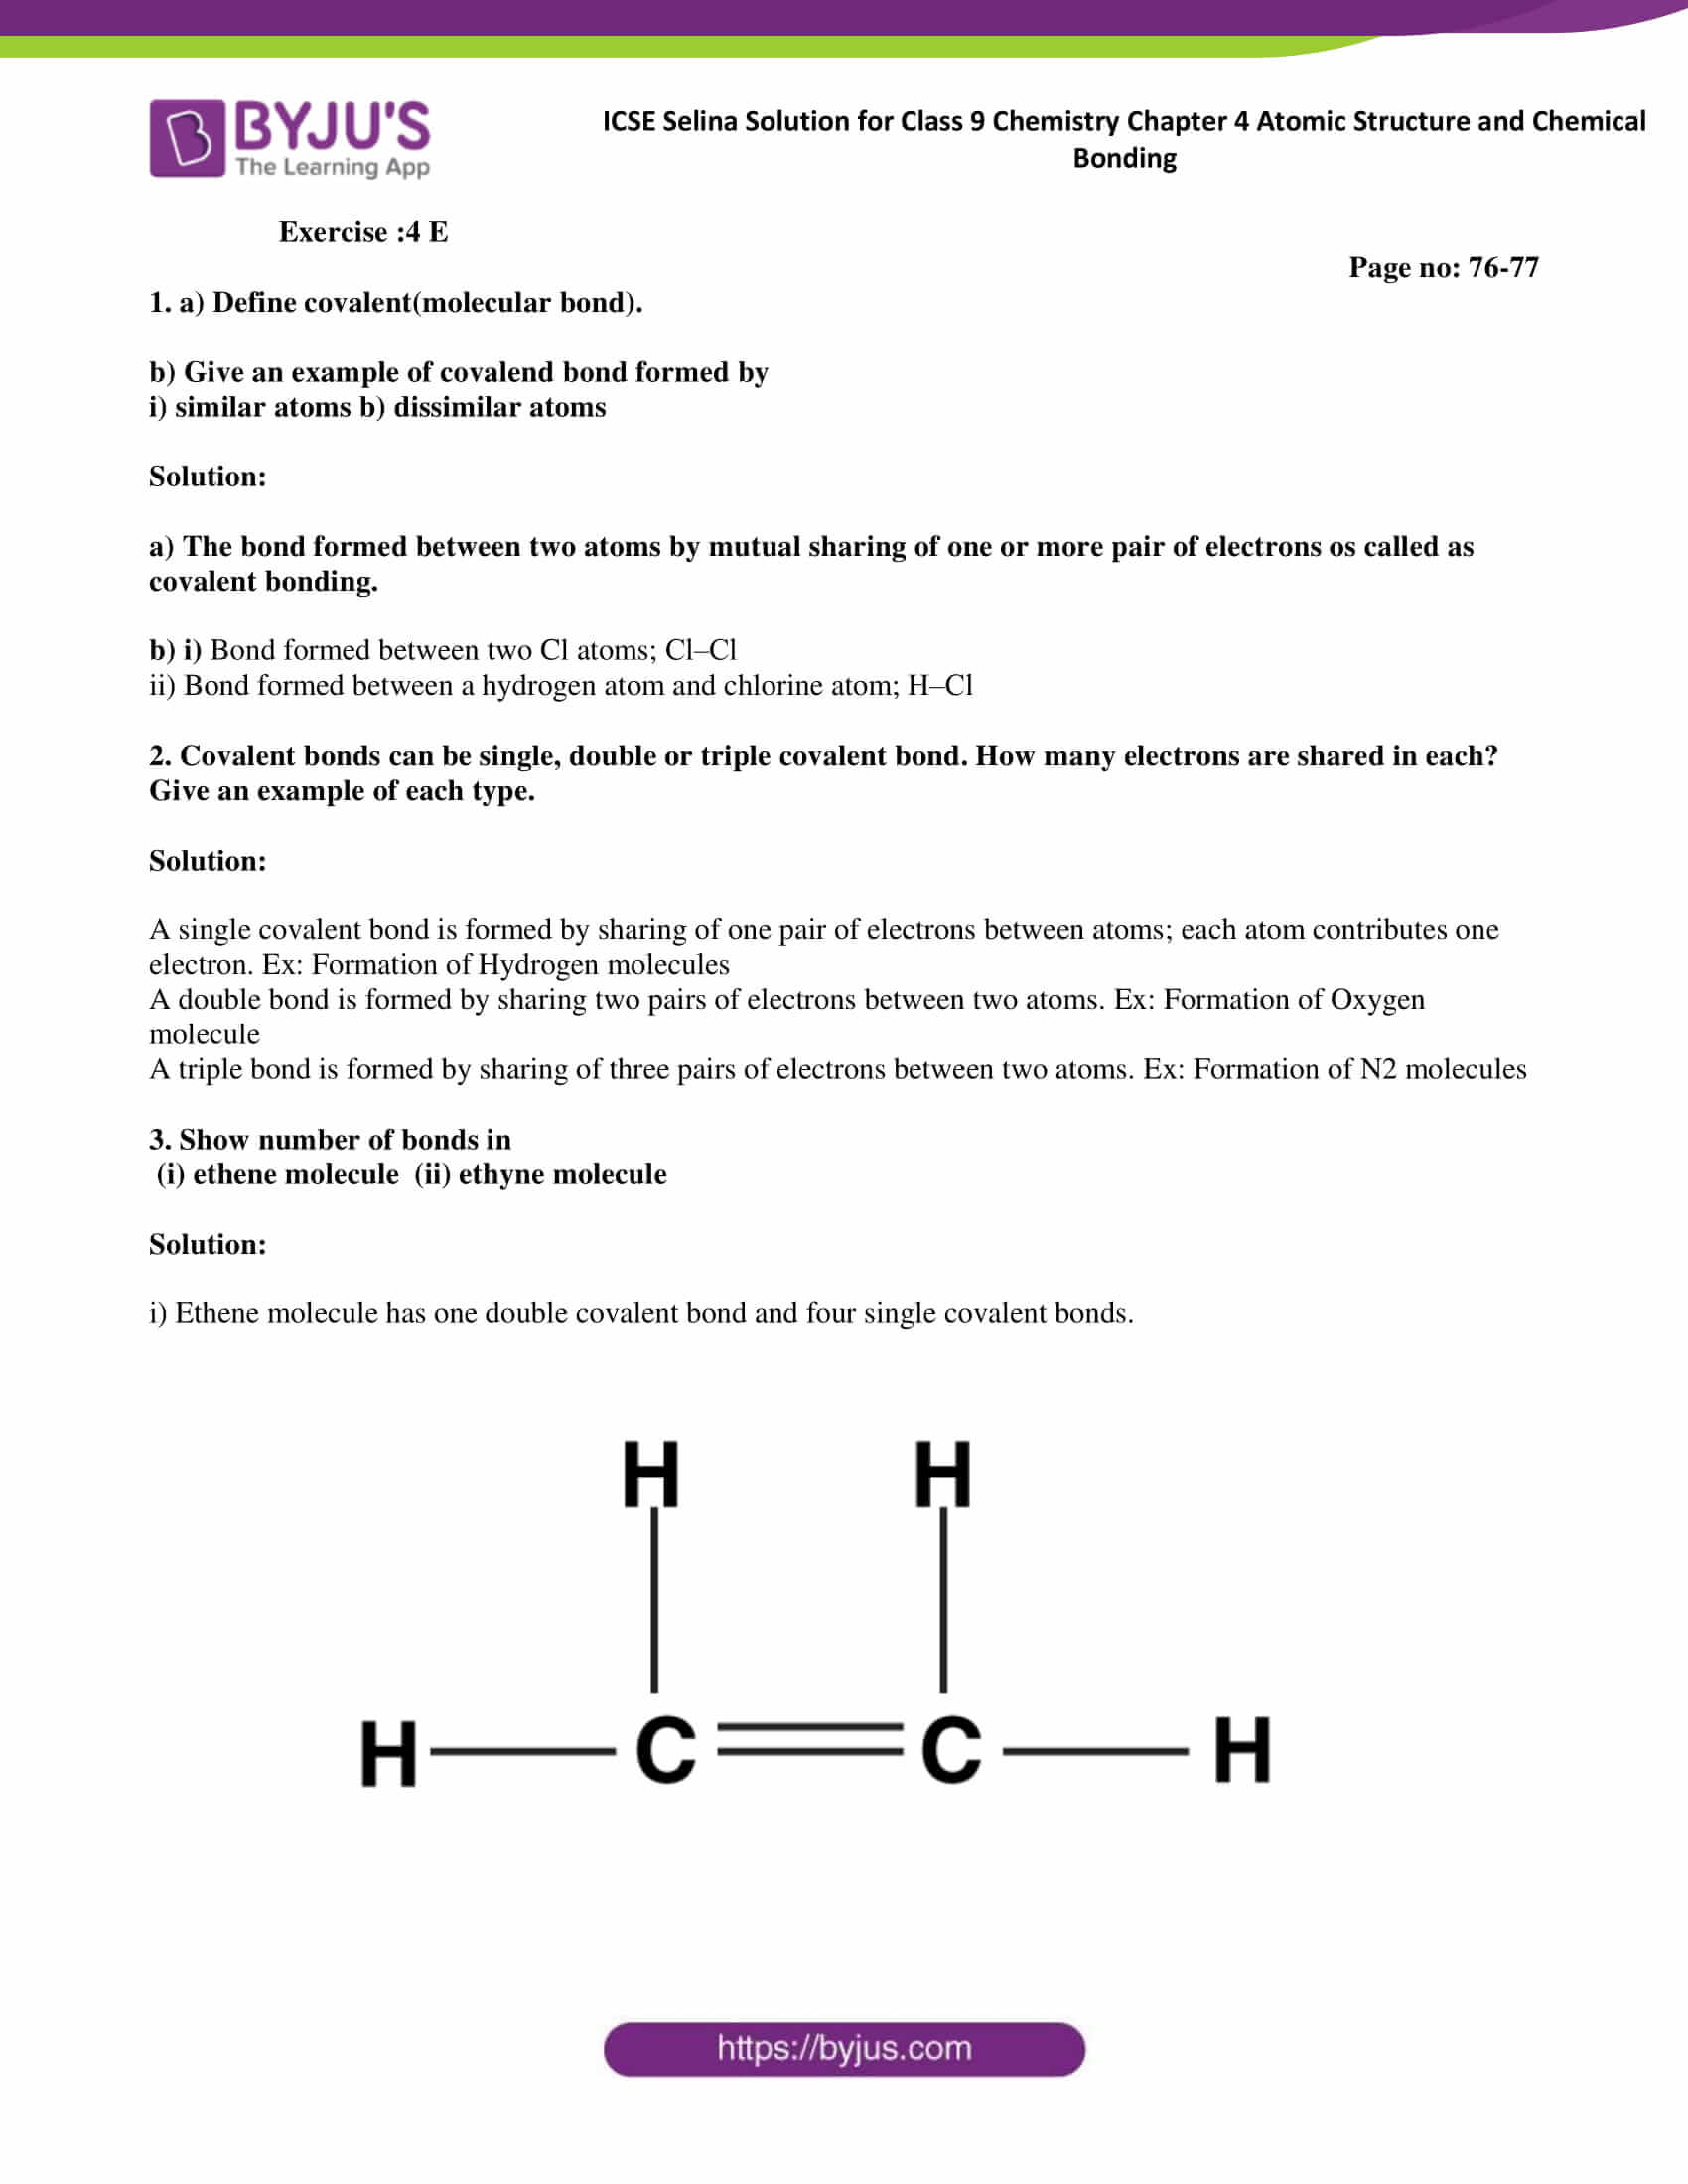 ICSE Selina Solution for class 9 Chemistry Chapter 4 Ex part 24